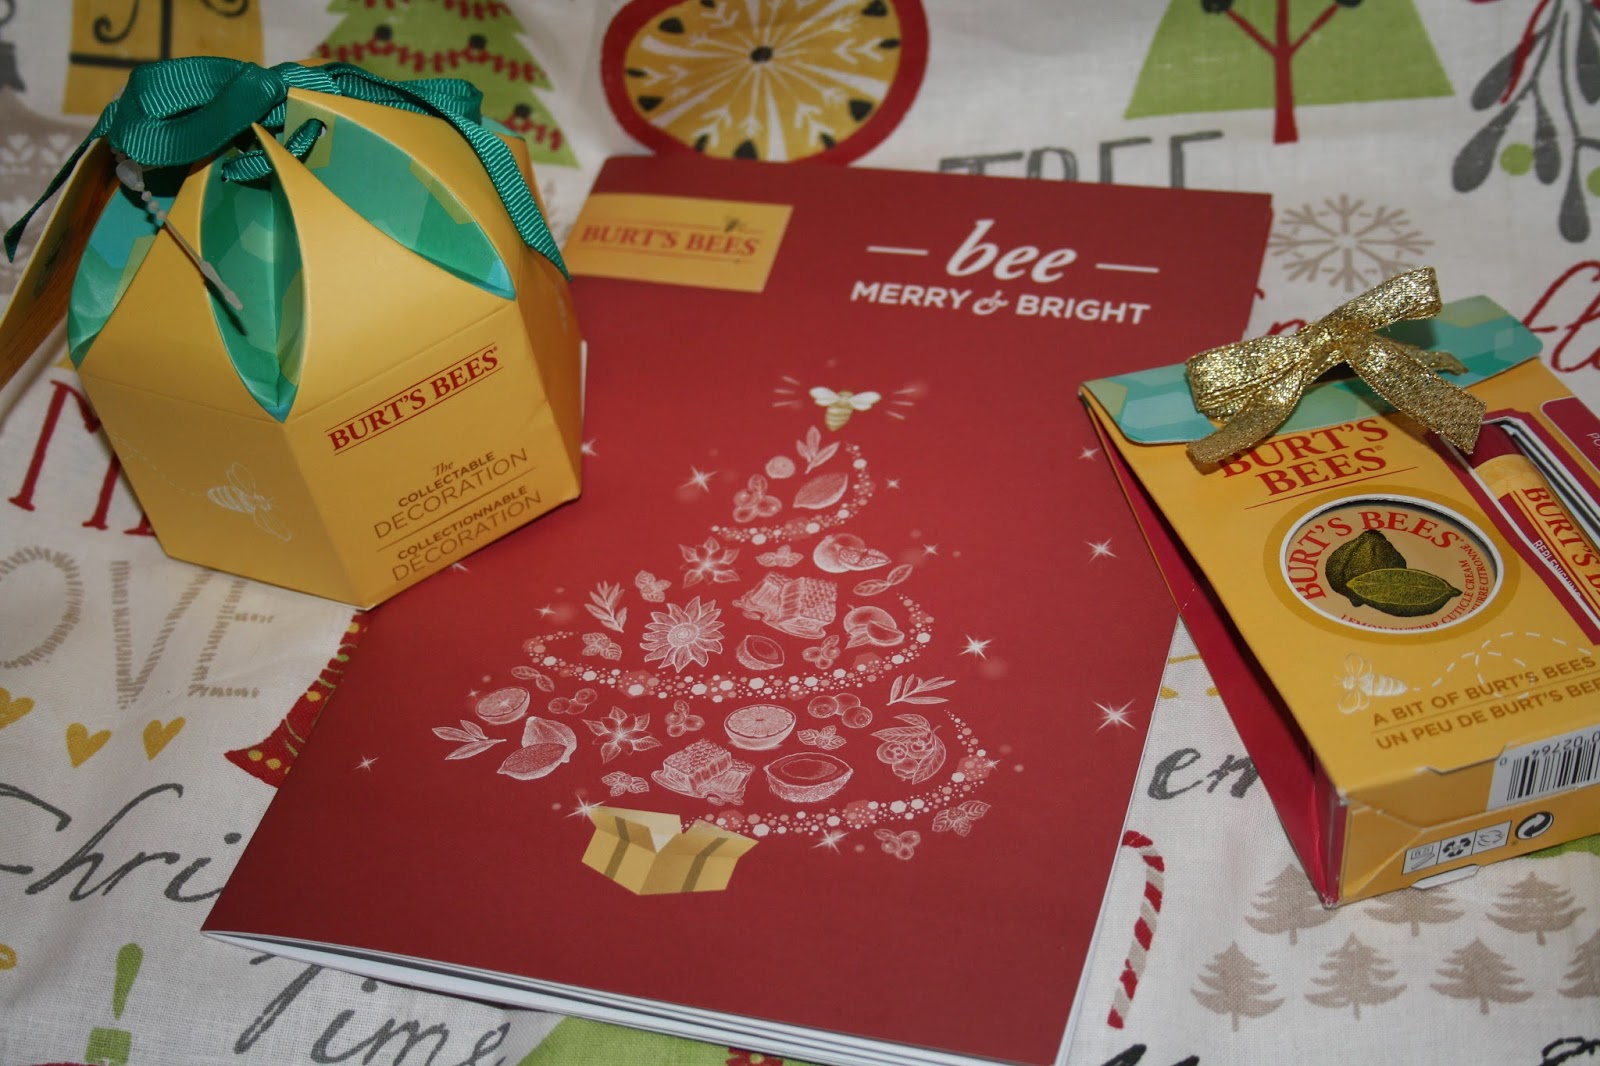 Stocking Fillers from Burt's Bees